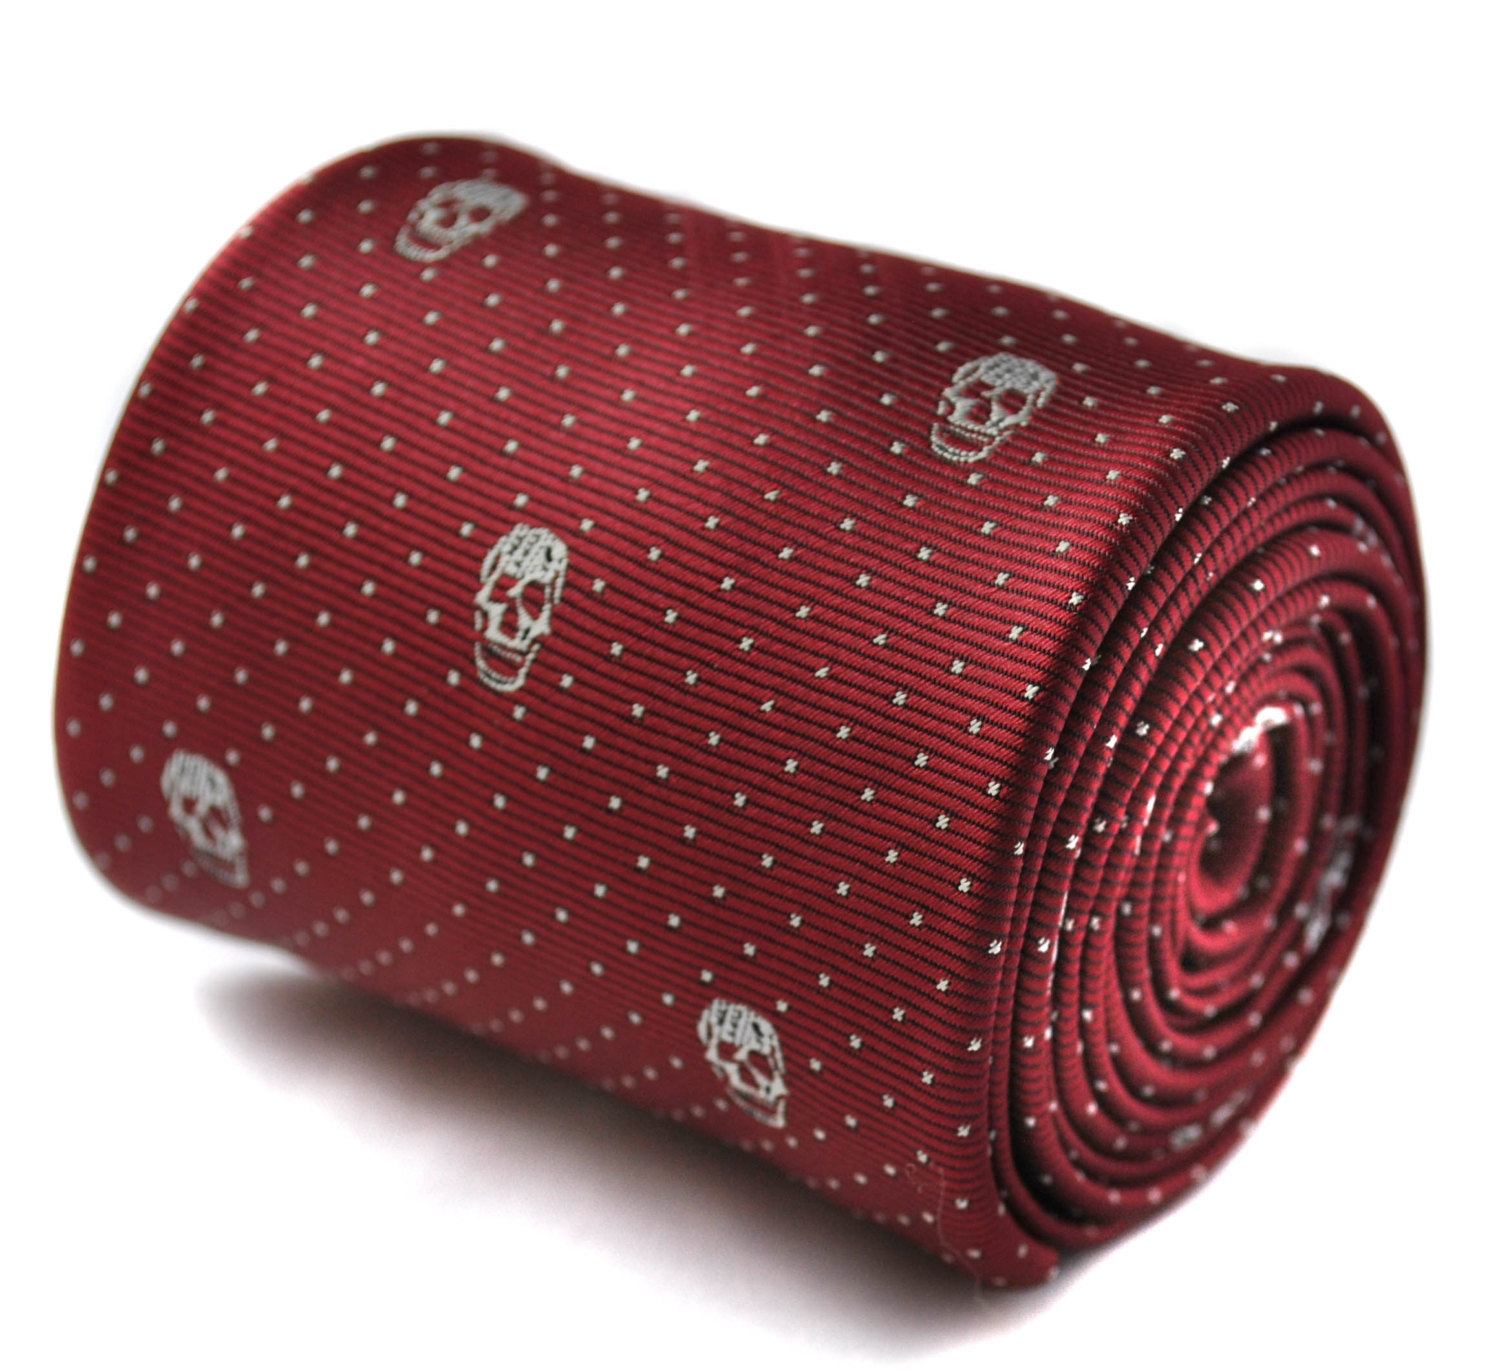 maroon skulls design tie with signature floral design to rear by Frederick Thoma